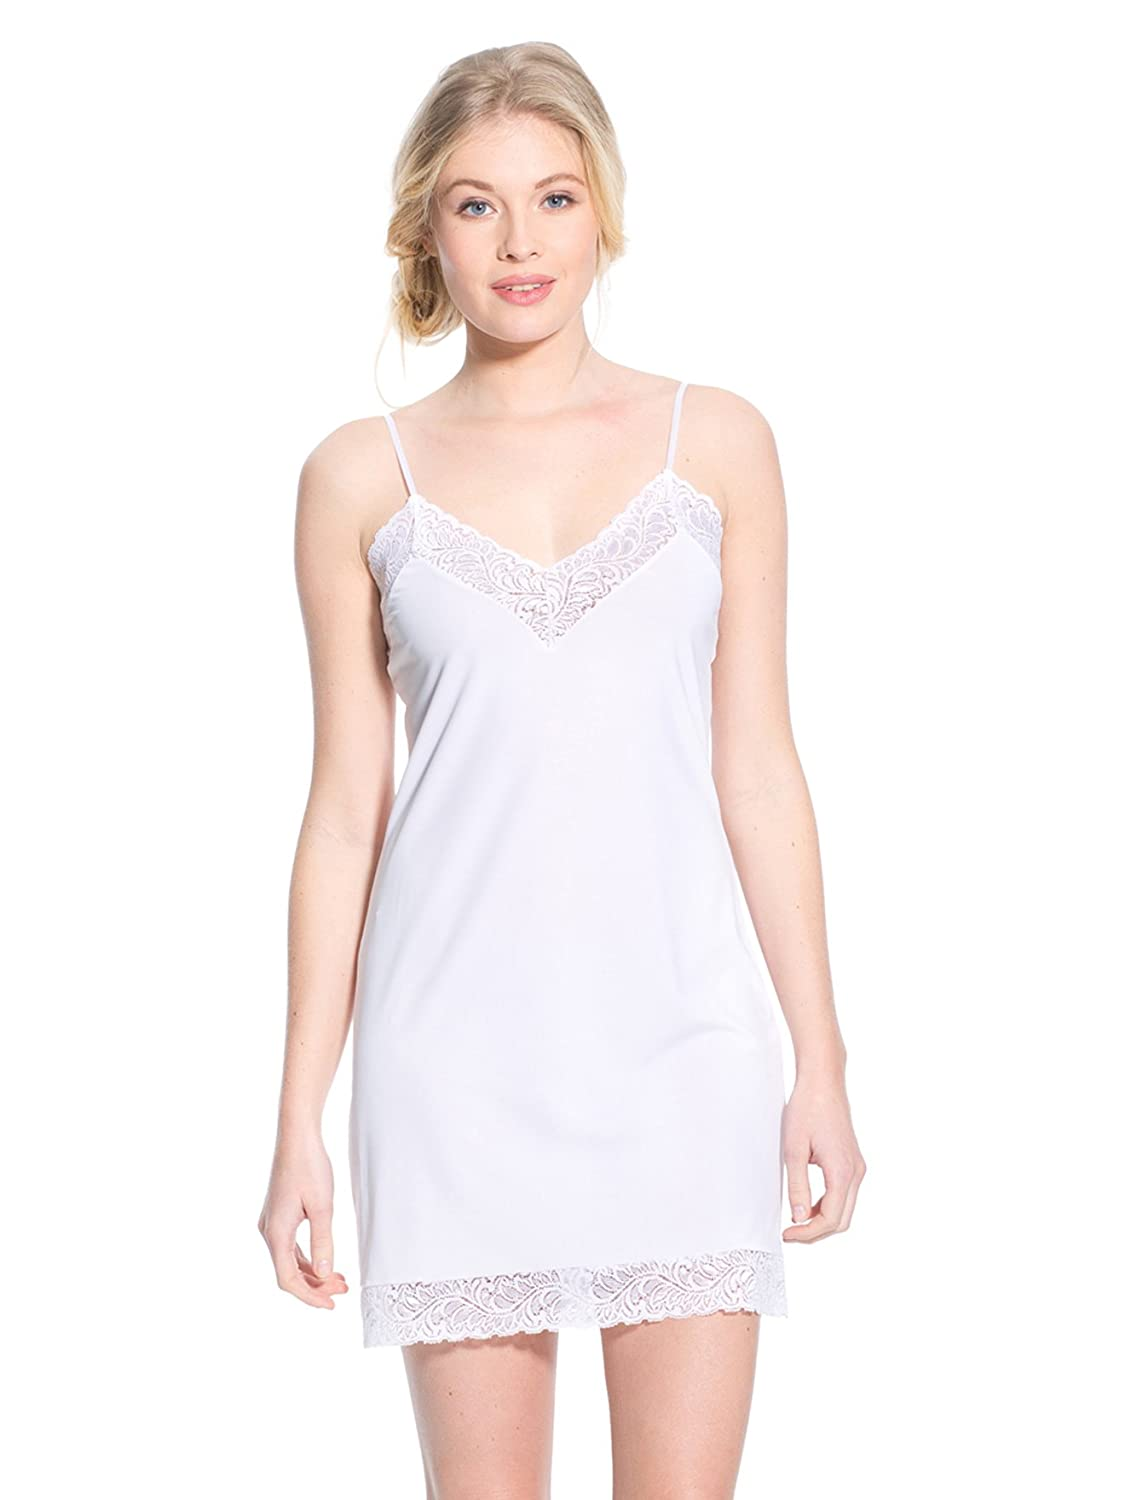 Balsamik - Lace Nightie - women